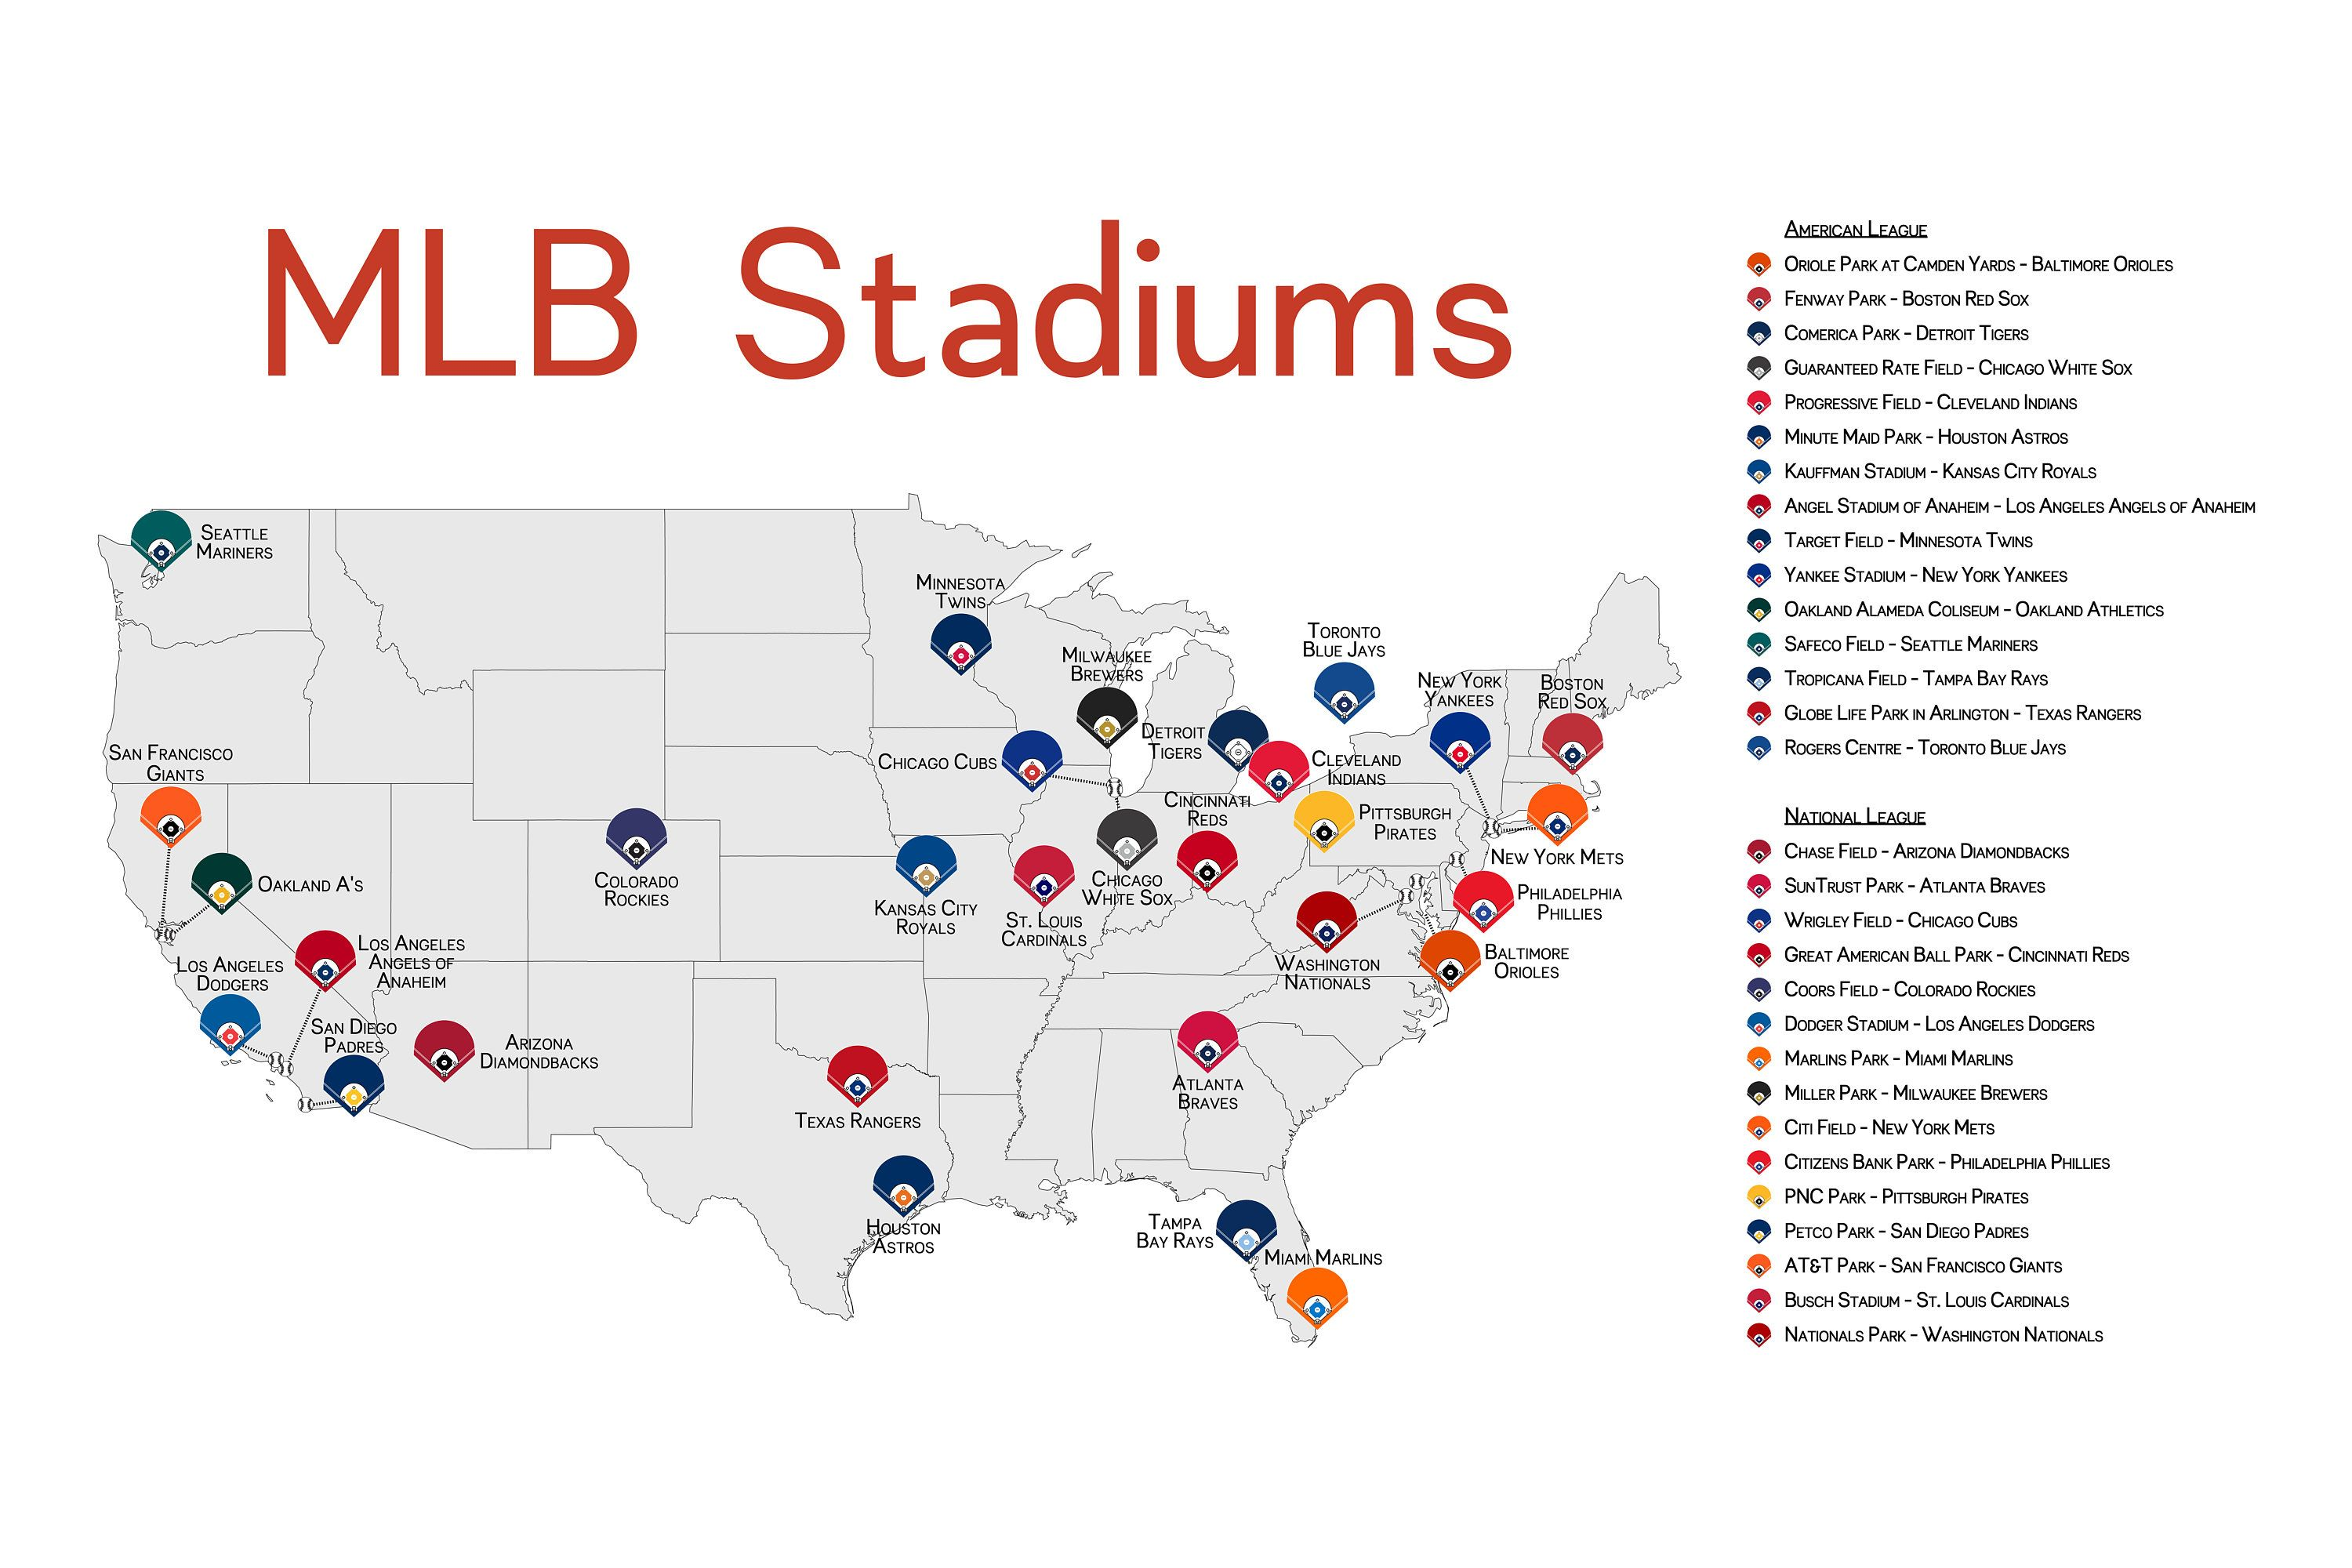 Map Of Mlb Stadiums In The Us Stadium Map, Stadium Checklist, Baseball Stadiums Map, MLB